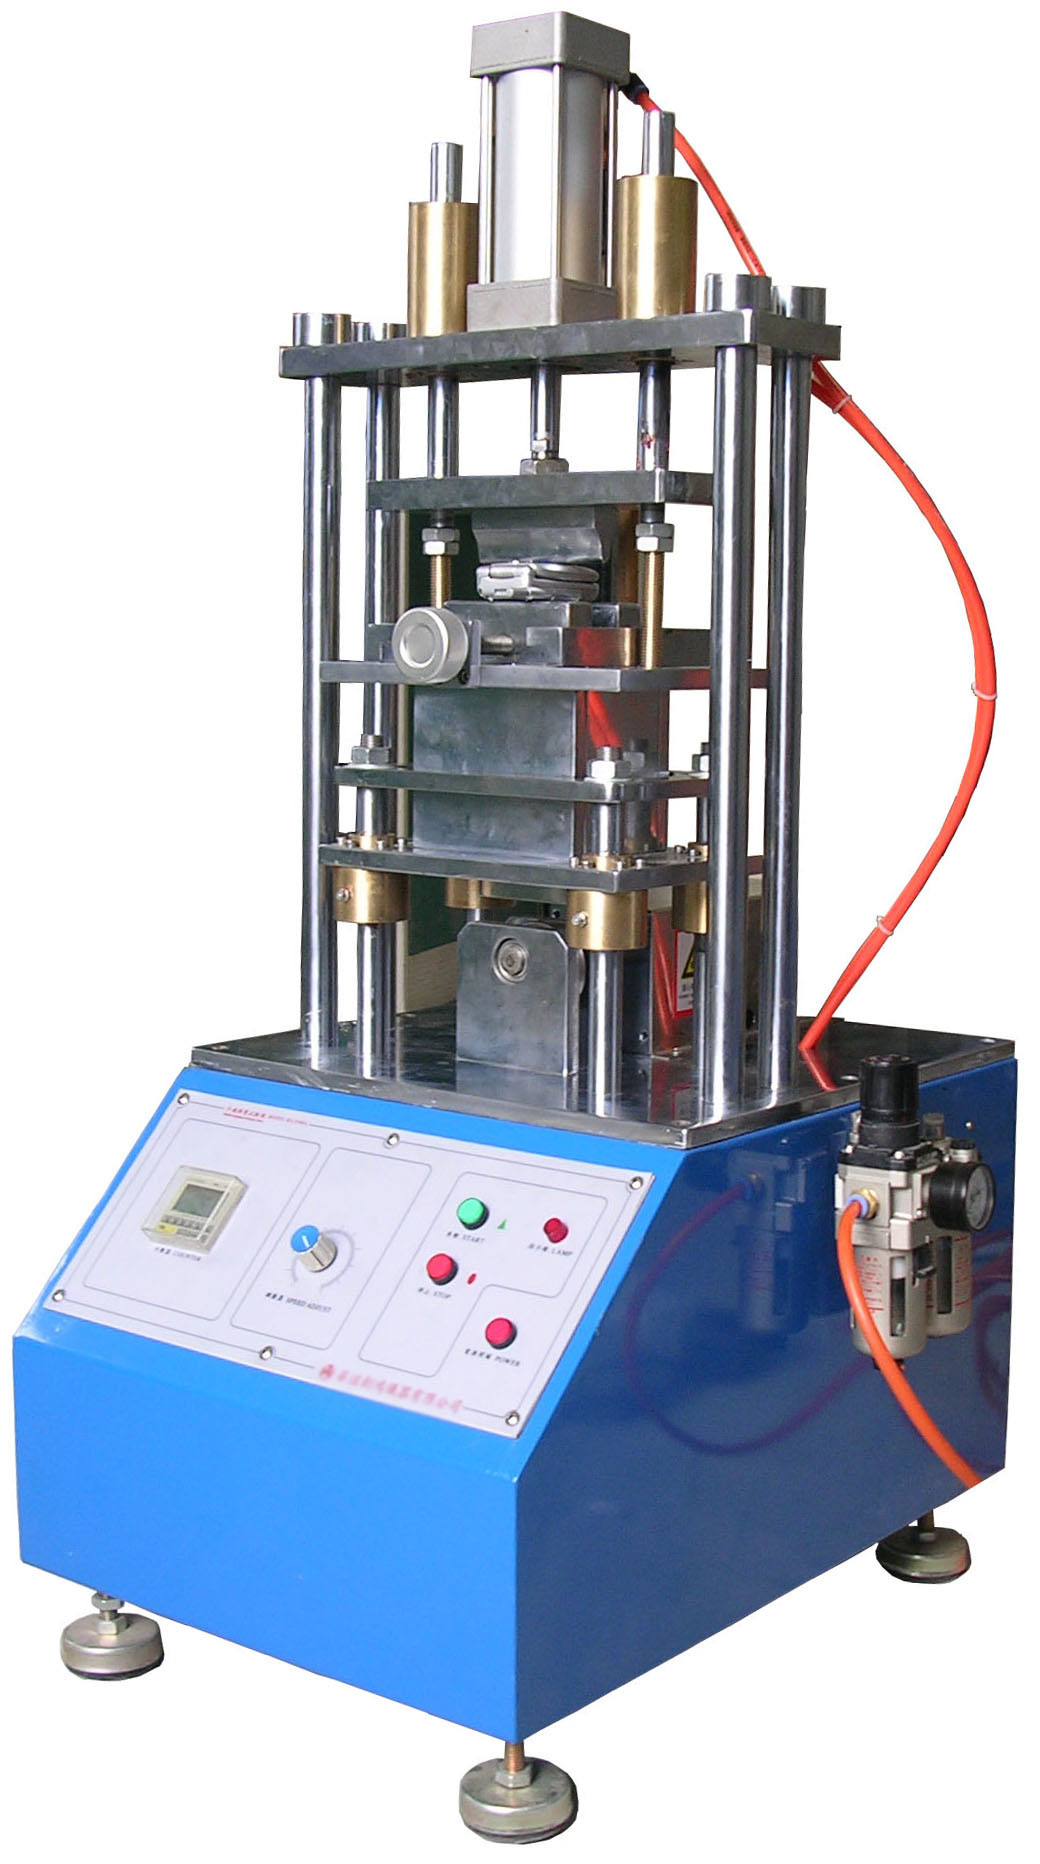 Extrusion Compression Test Equipment For Small Consumer Electronics Such As Mobile Phones